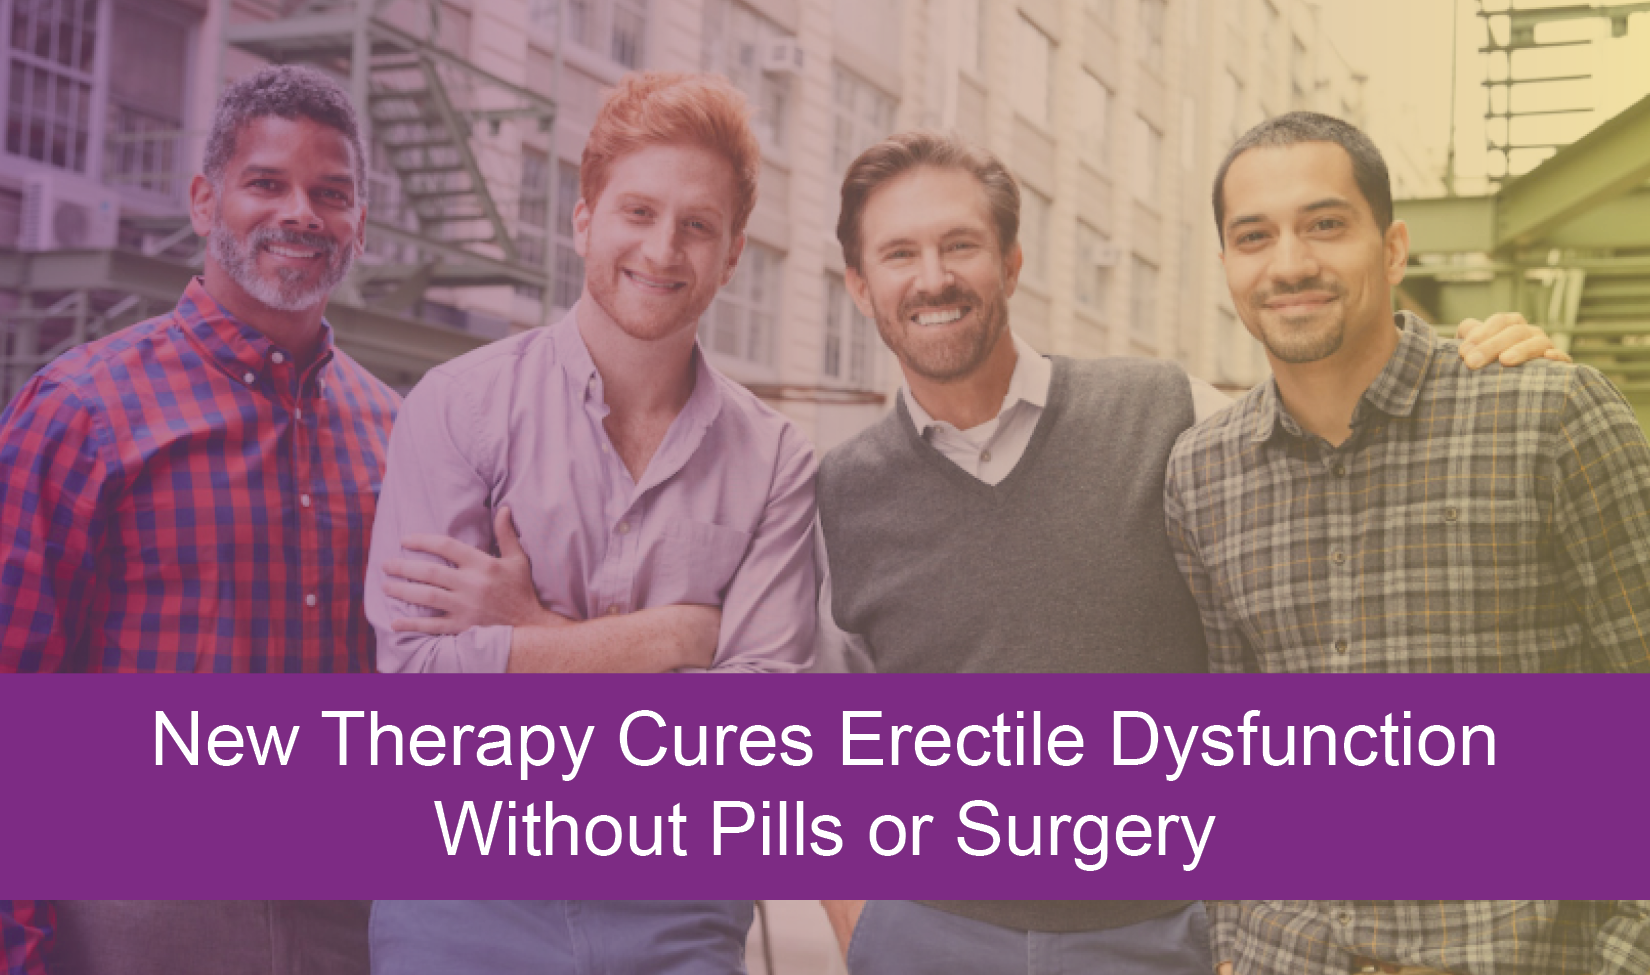 New Therapy Cures Erectile Dysfunction Without Pills or Surgery